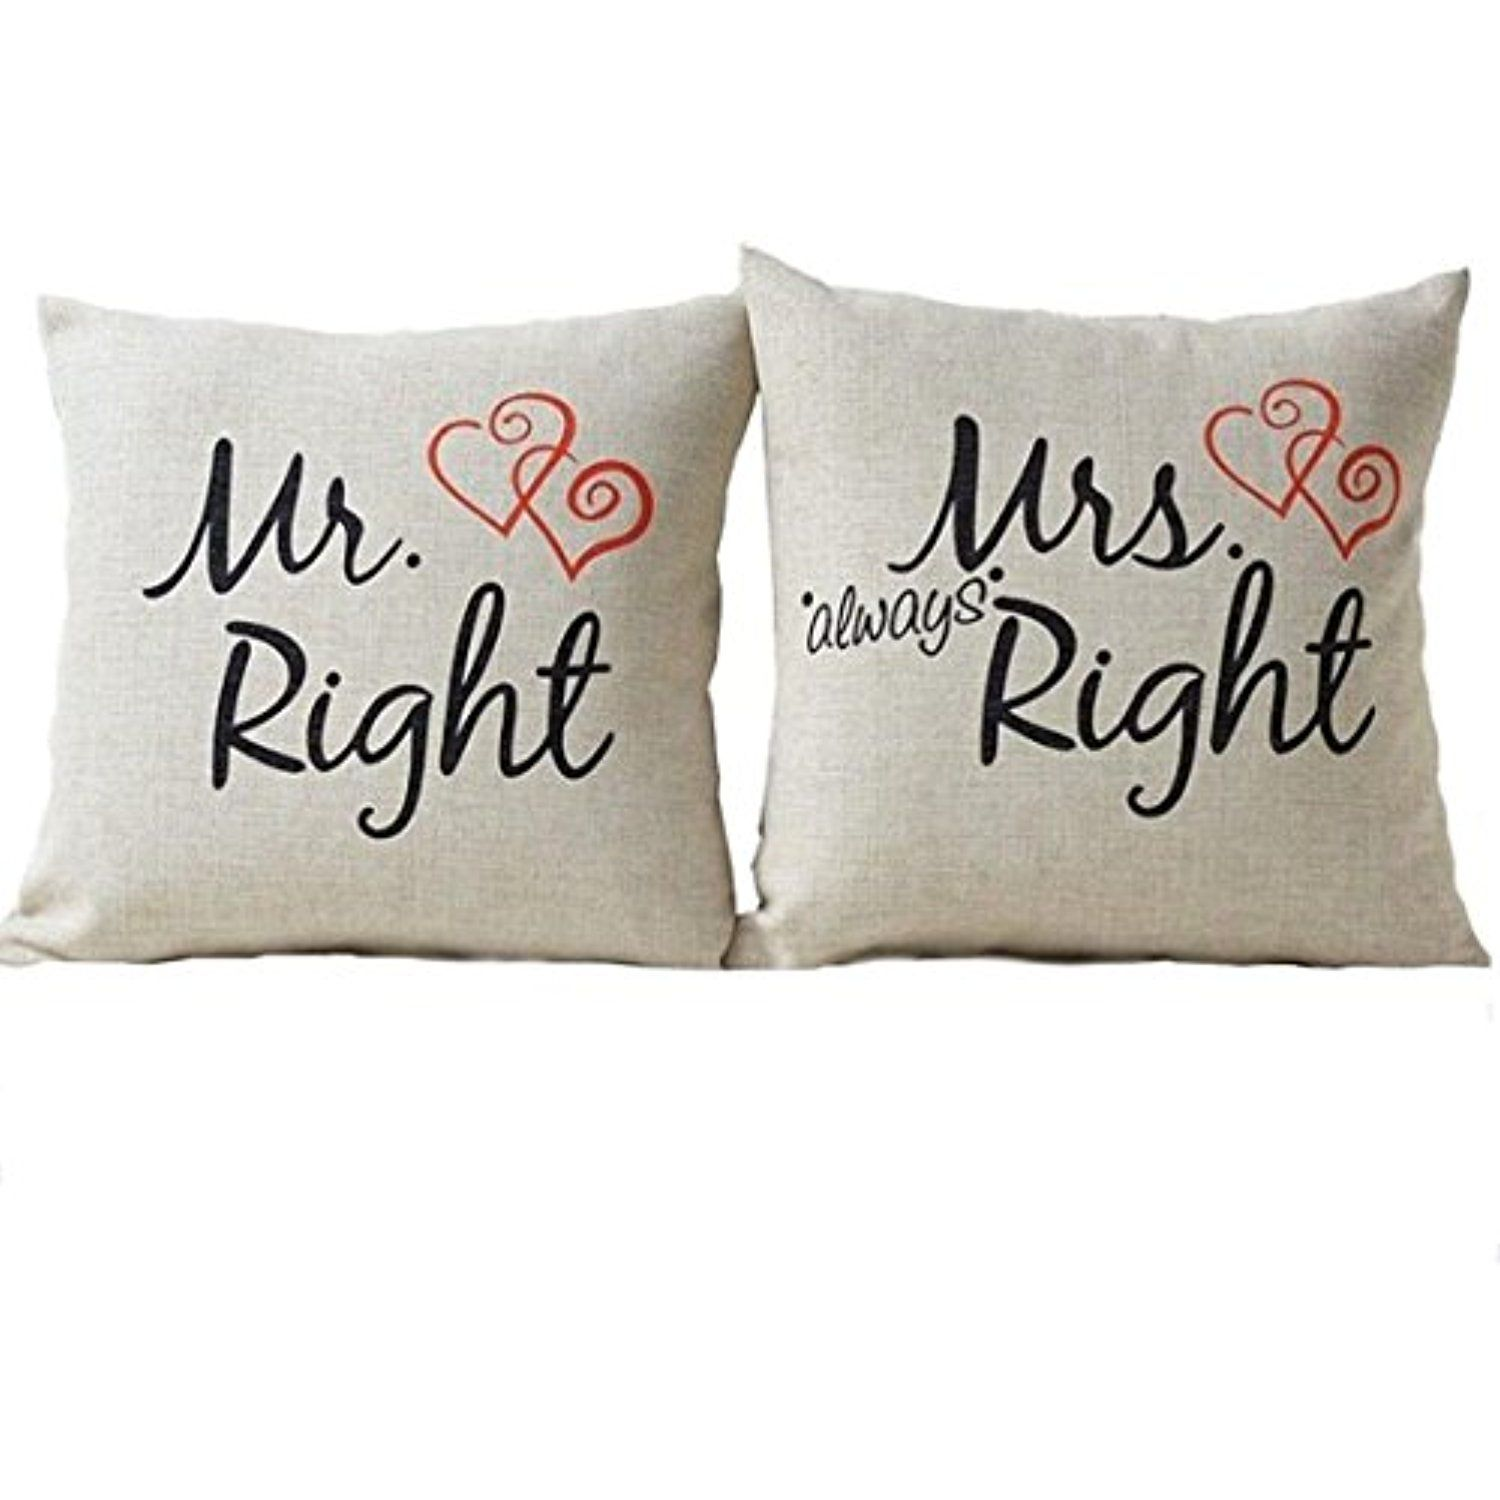 Youngnet 2pcs Mr Right Bedding With Images Festive Pillow